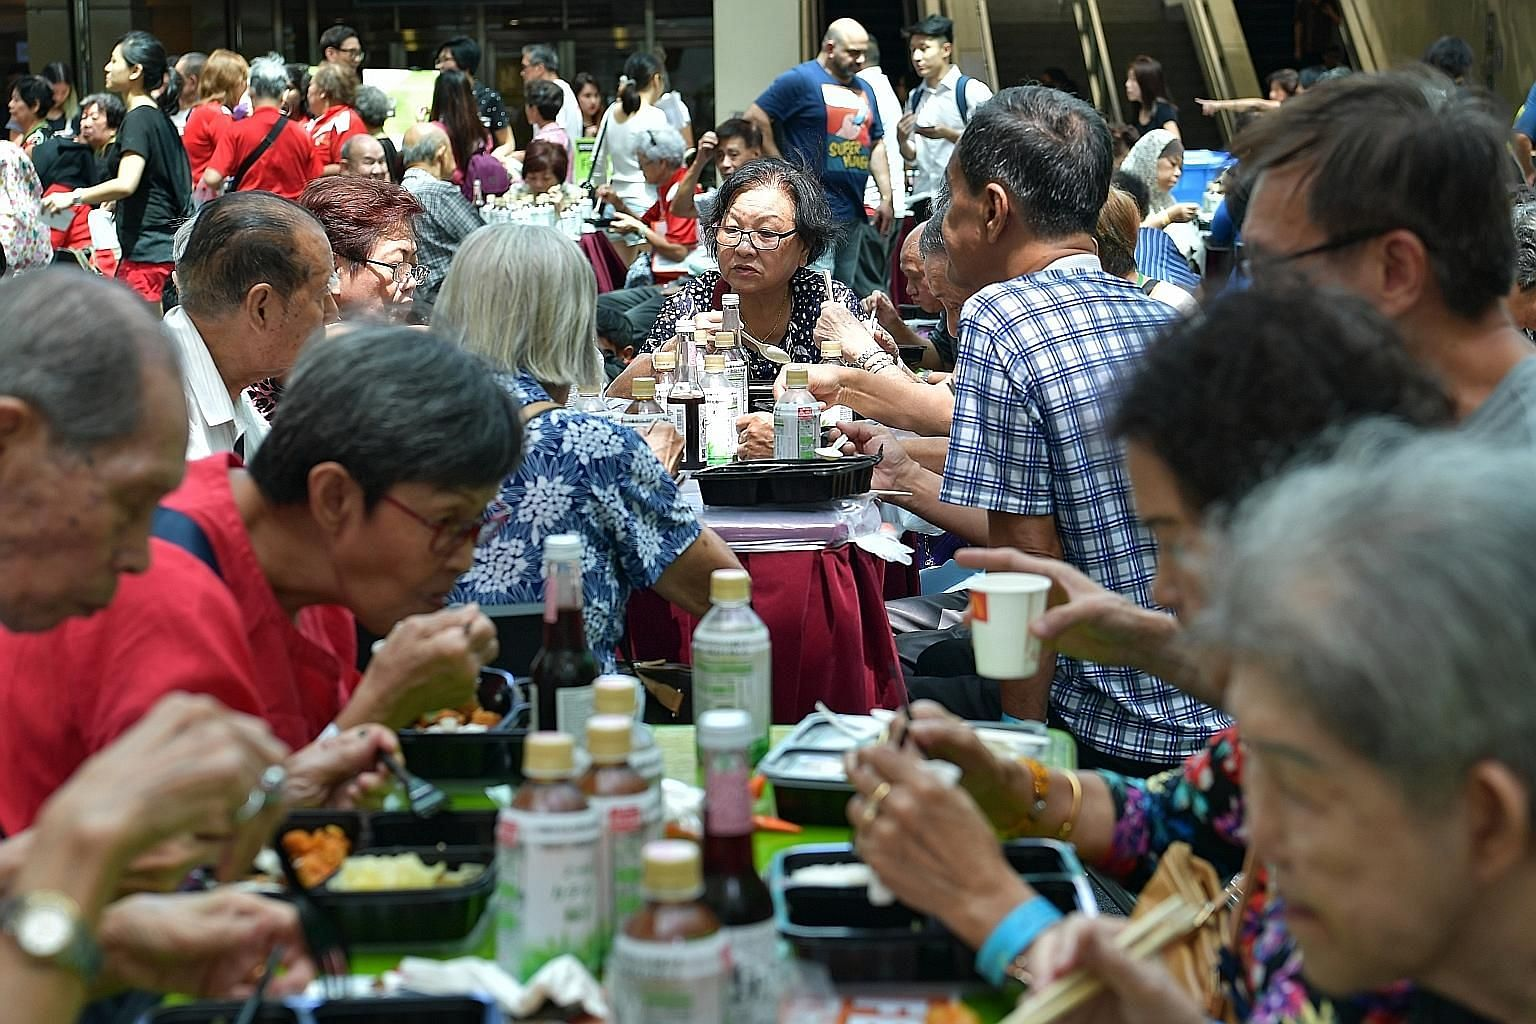 People tucking into a meal at Food Bank Singapore's inaugural community engagement event yesterday at City Square Mall in Kitchener Road. The day's activities included cooking demonstrations and talks on food insecurity and food waste. There were als